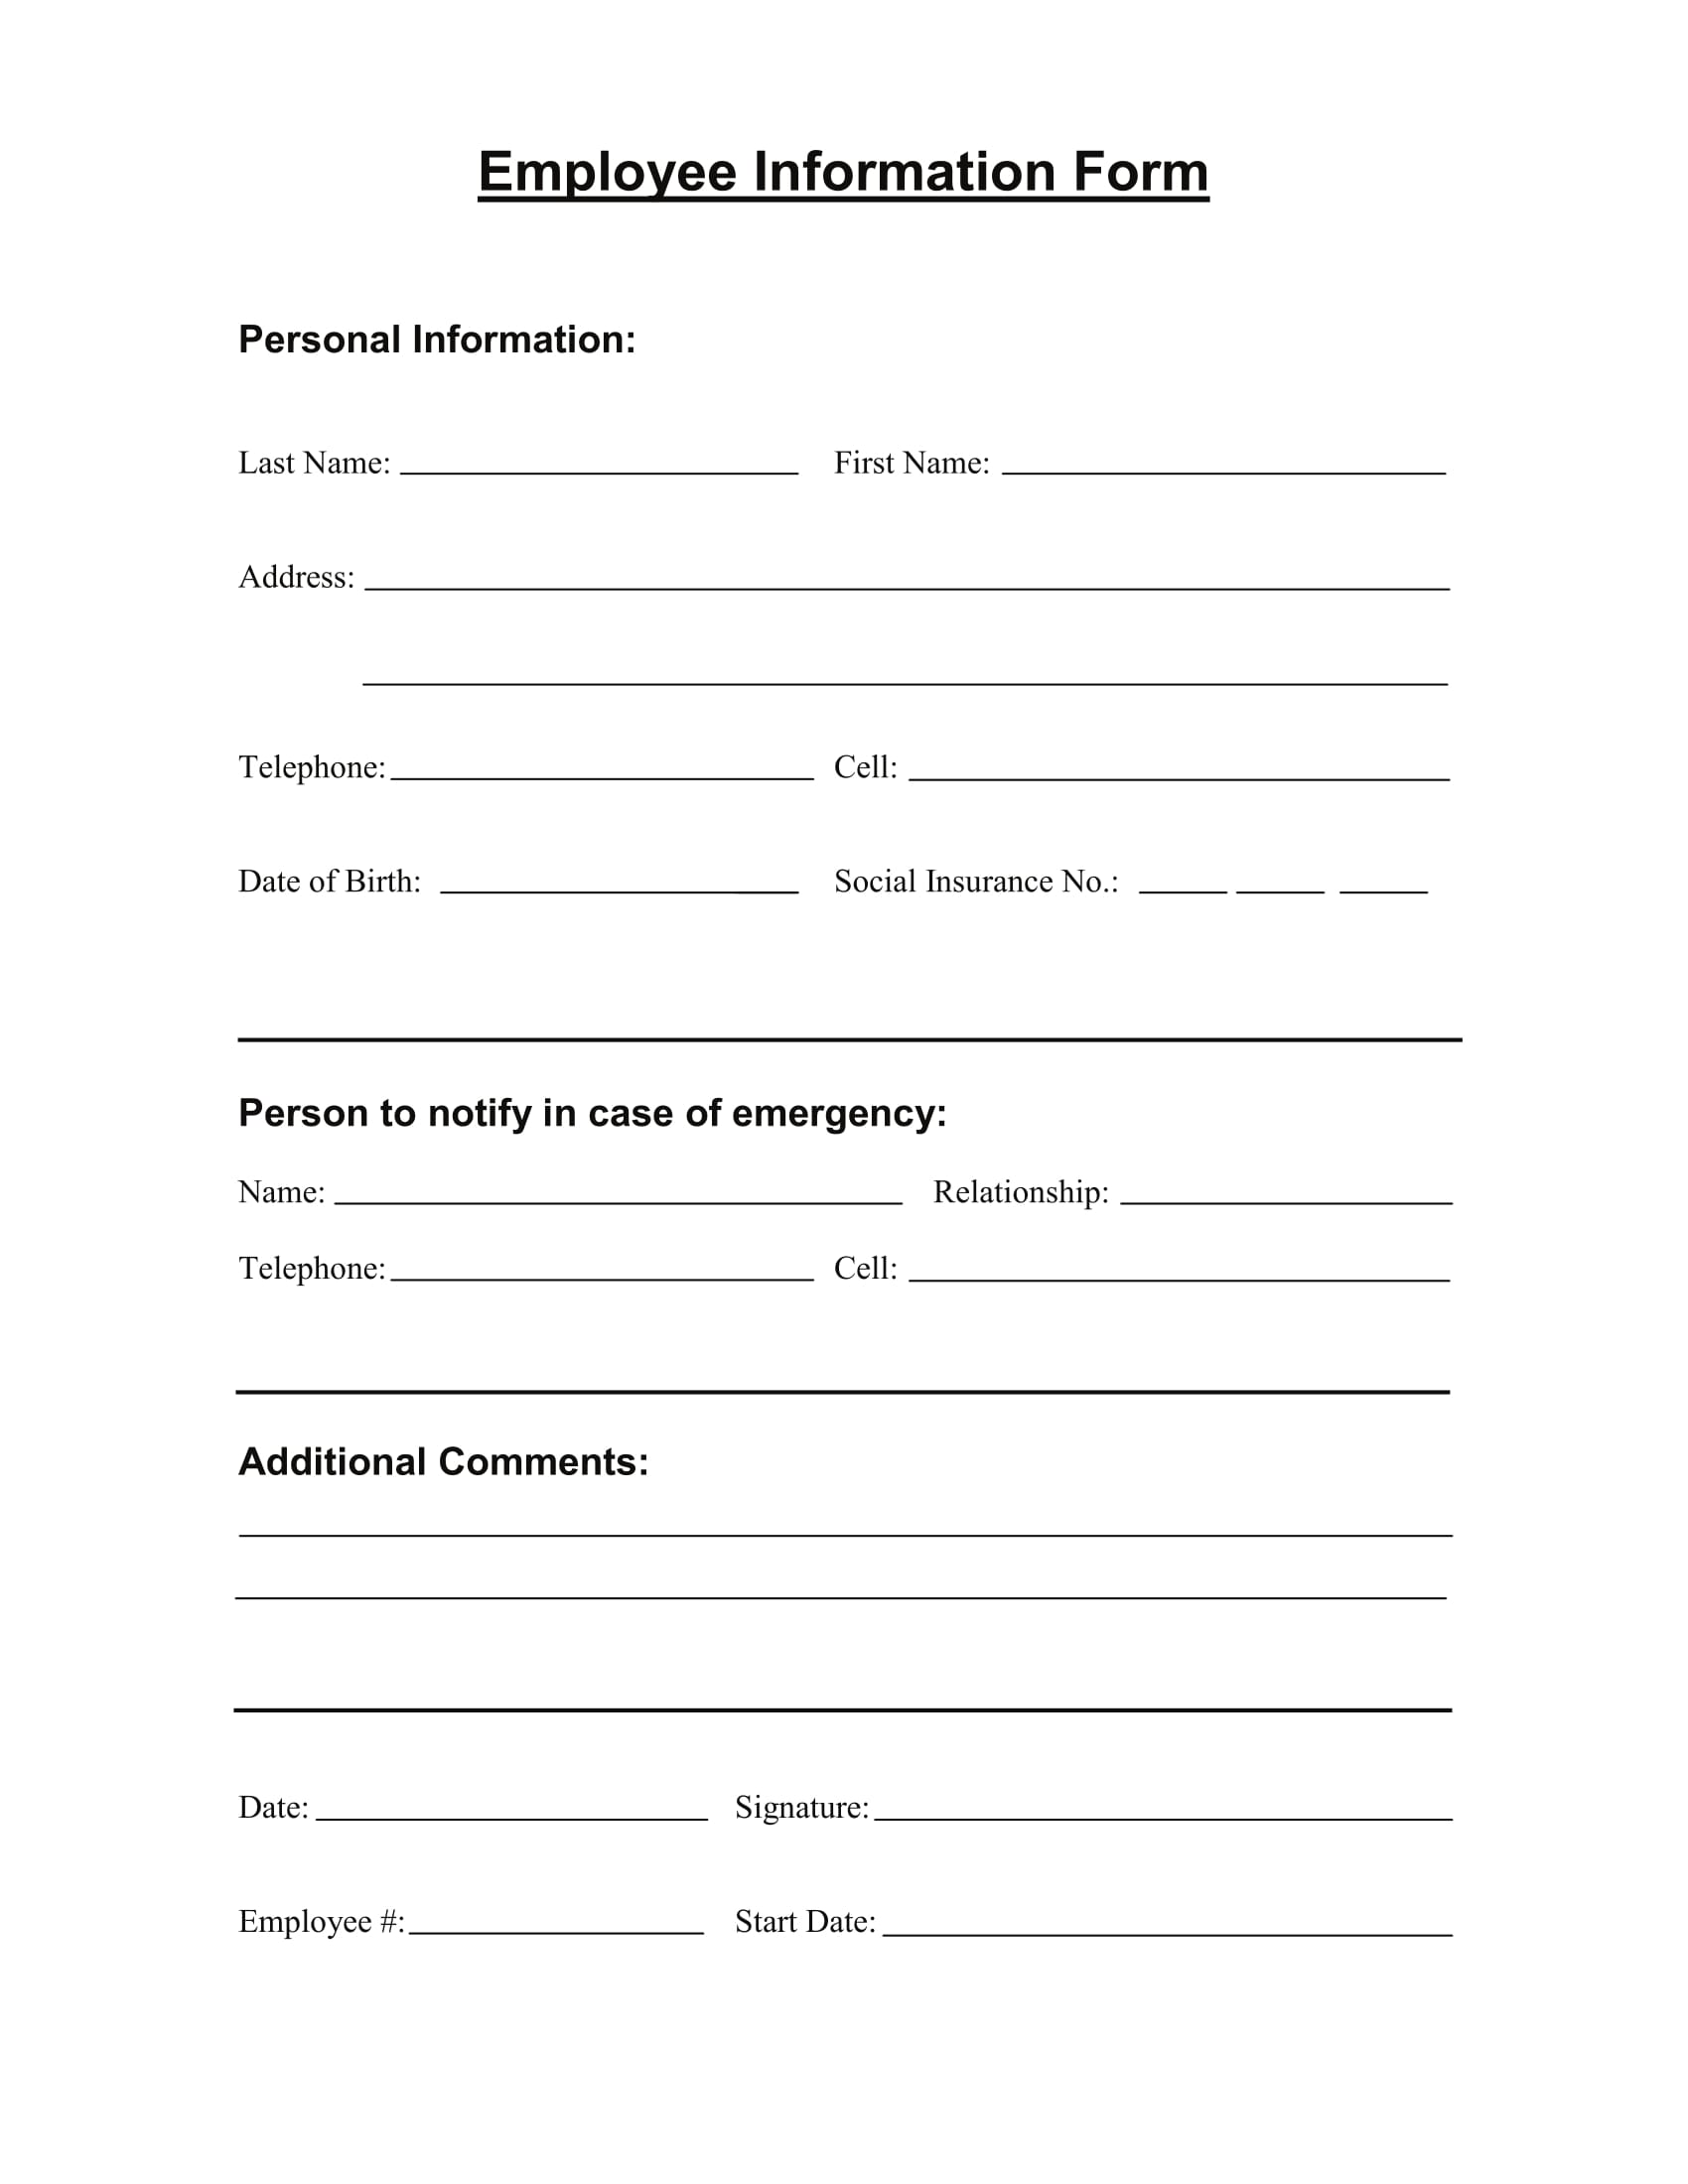 employee information form sample 1